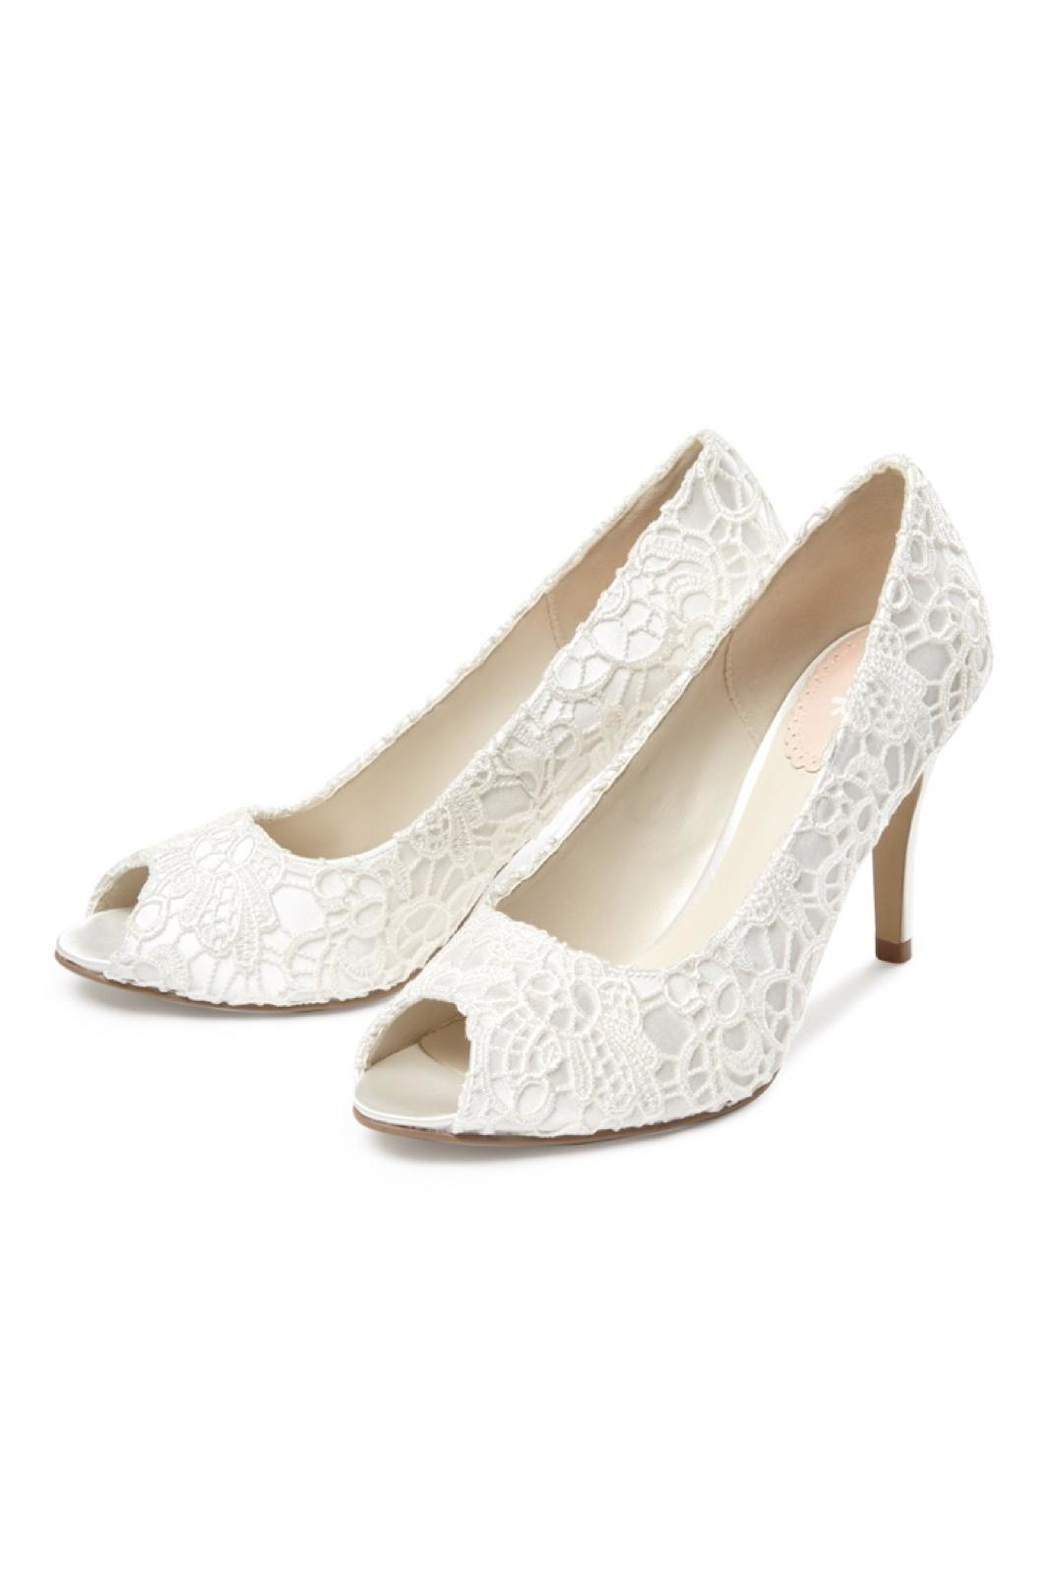 pink paradox London Cosmos Ivory Lace Heels - Front Full Image